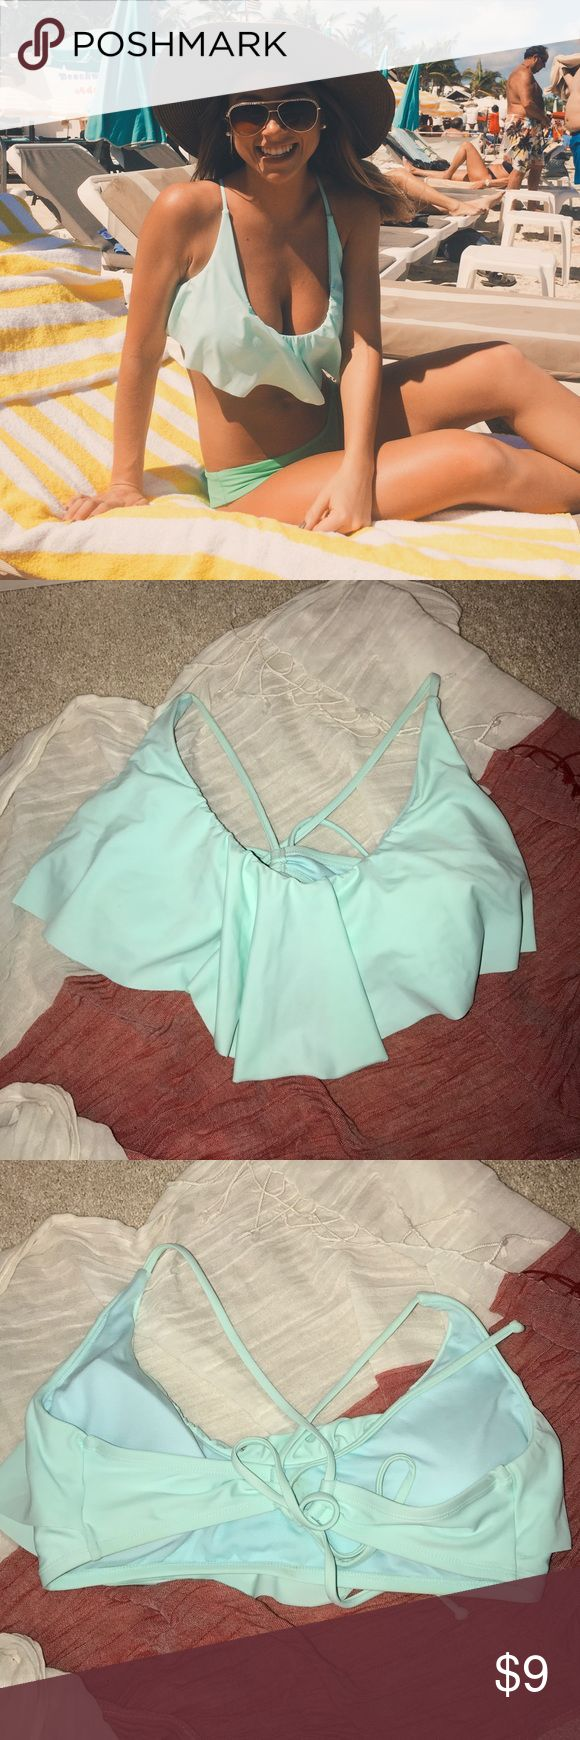 Mint colored bikini bathing suit top In great condition other than a small mark on the inside of the bathing suit not visible when worn. Mint colored. Originally from target. Great coverage. Fits mostly like a Large (cup D). Xhilaration Swim Bikinis